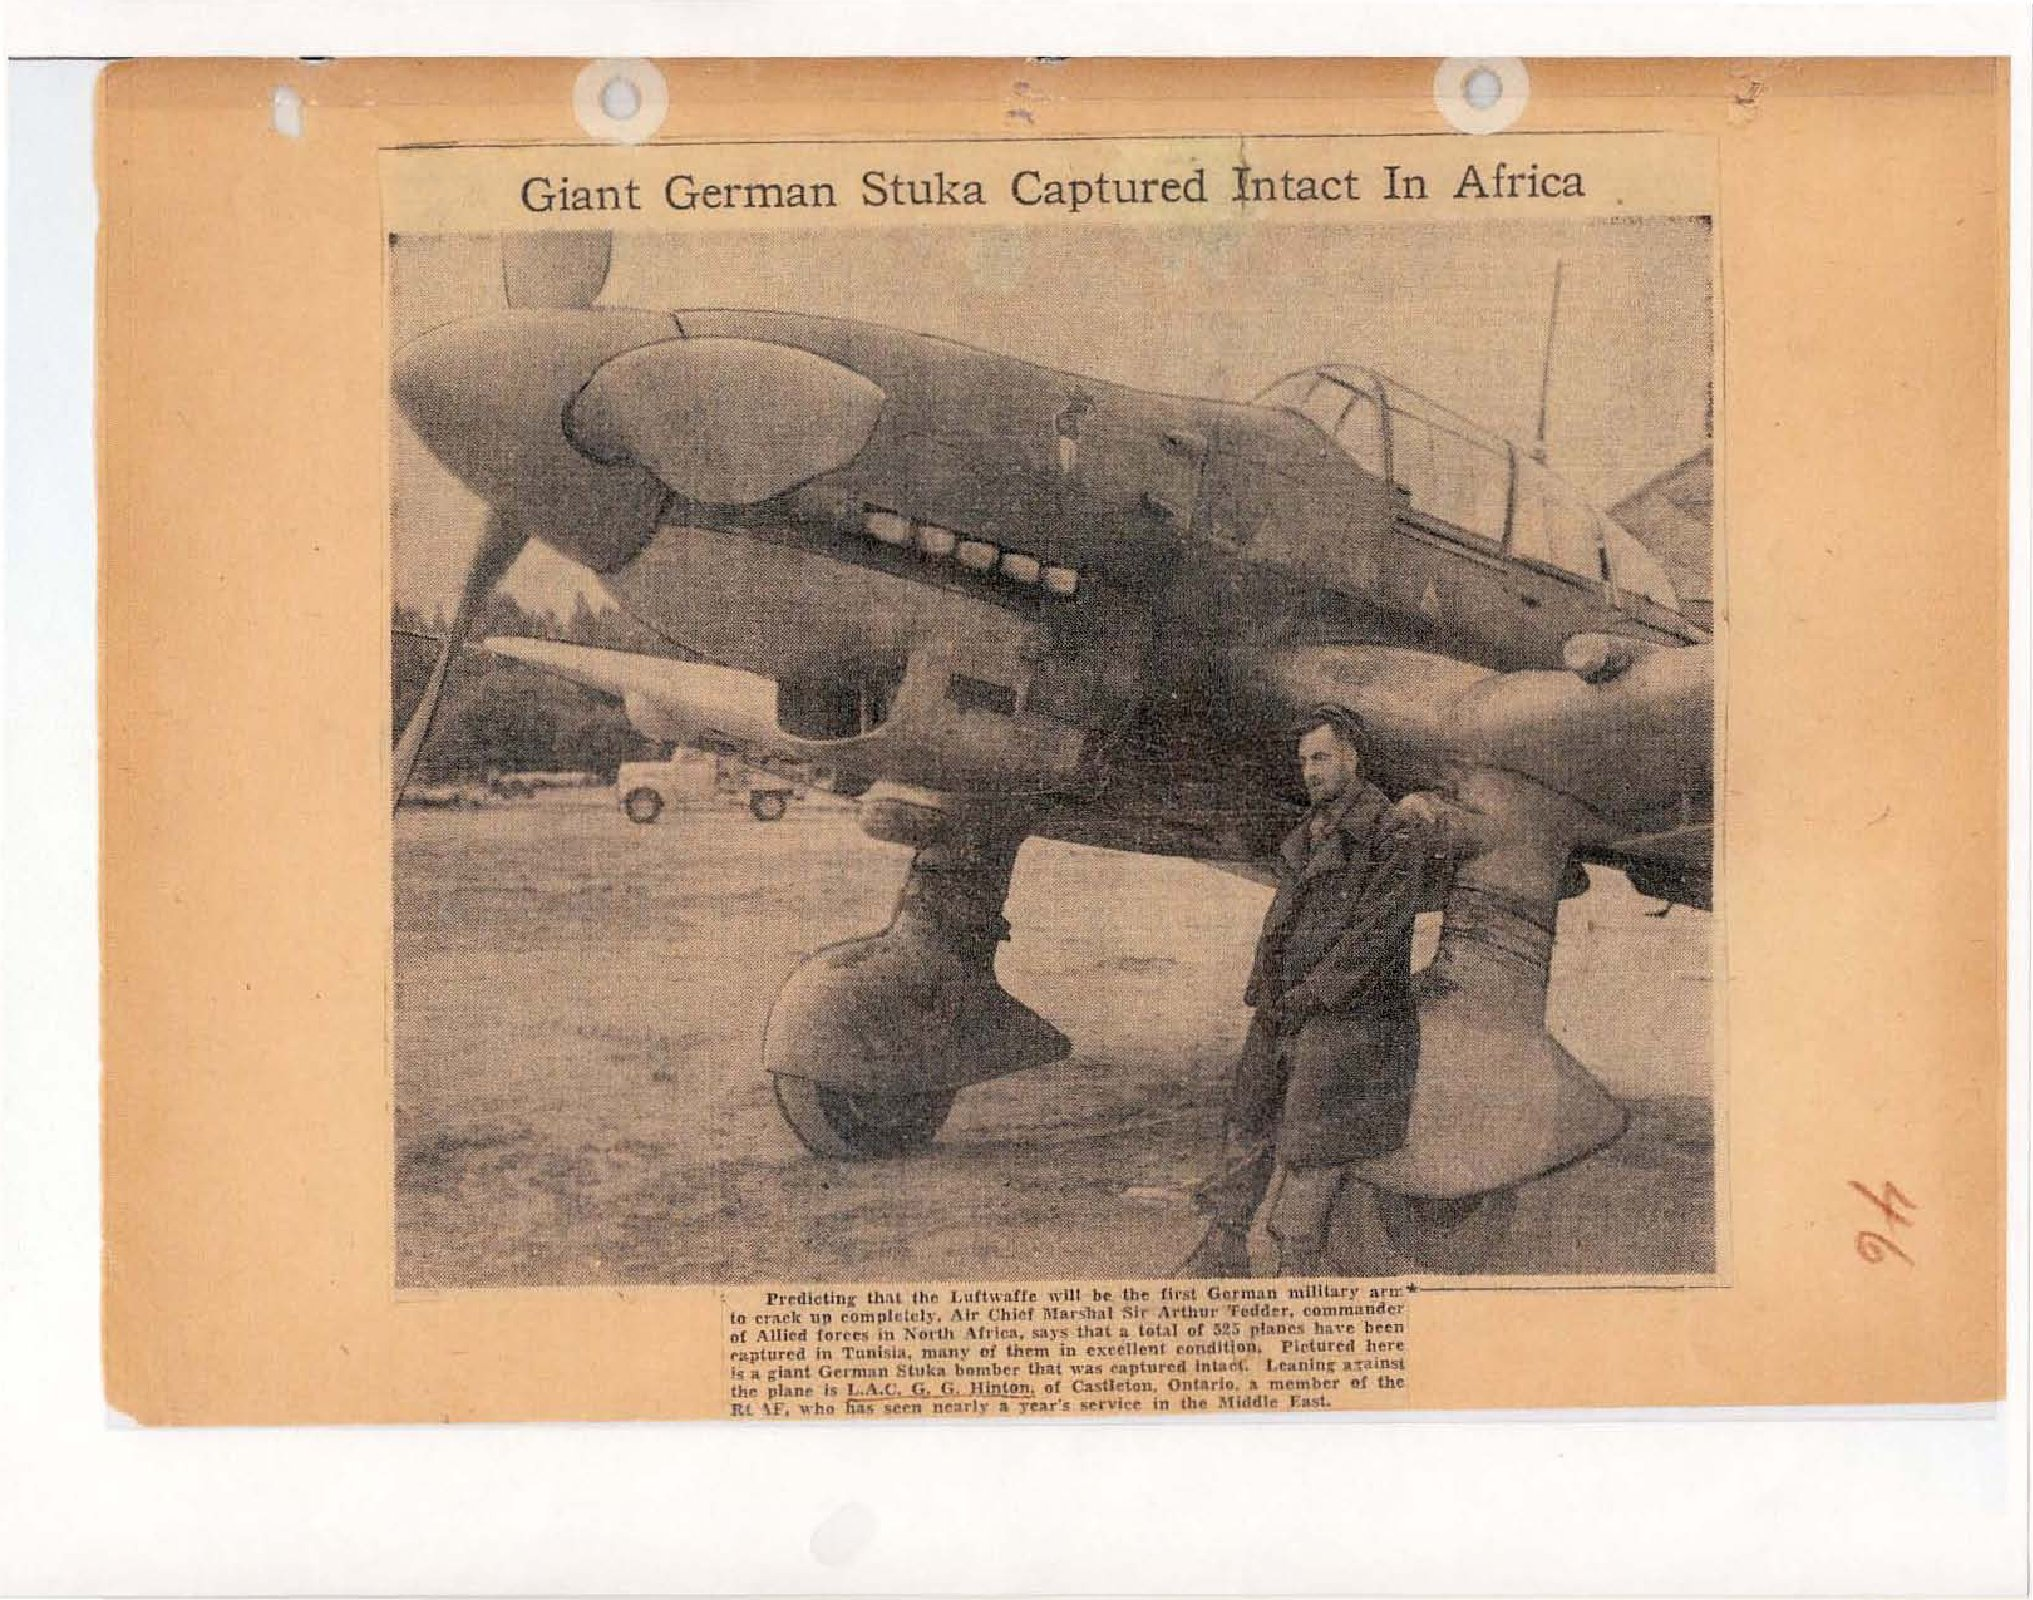 Page 56: Giant German Stuka Captured Intact in Africa